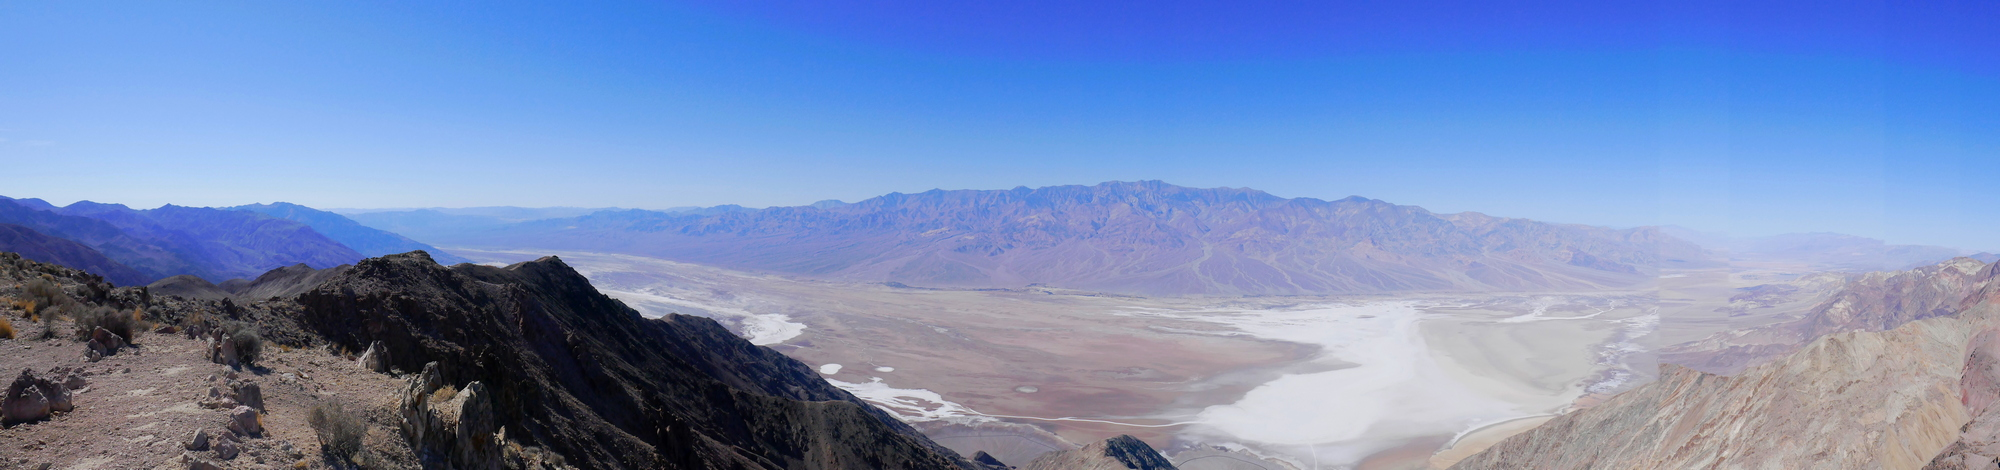 Death Valley le lac de sel vue de Dante Ridge